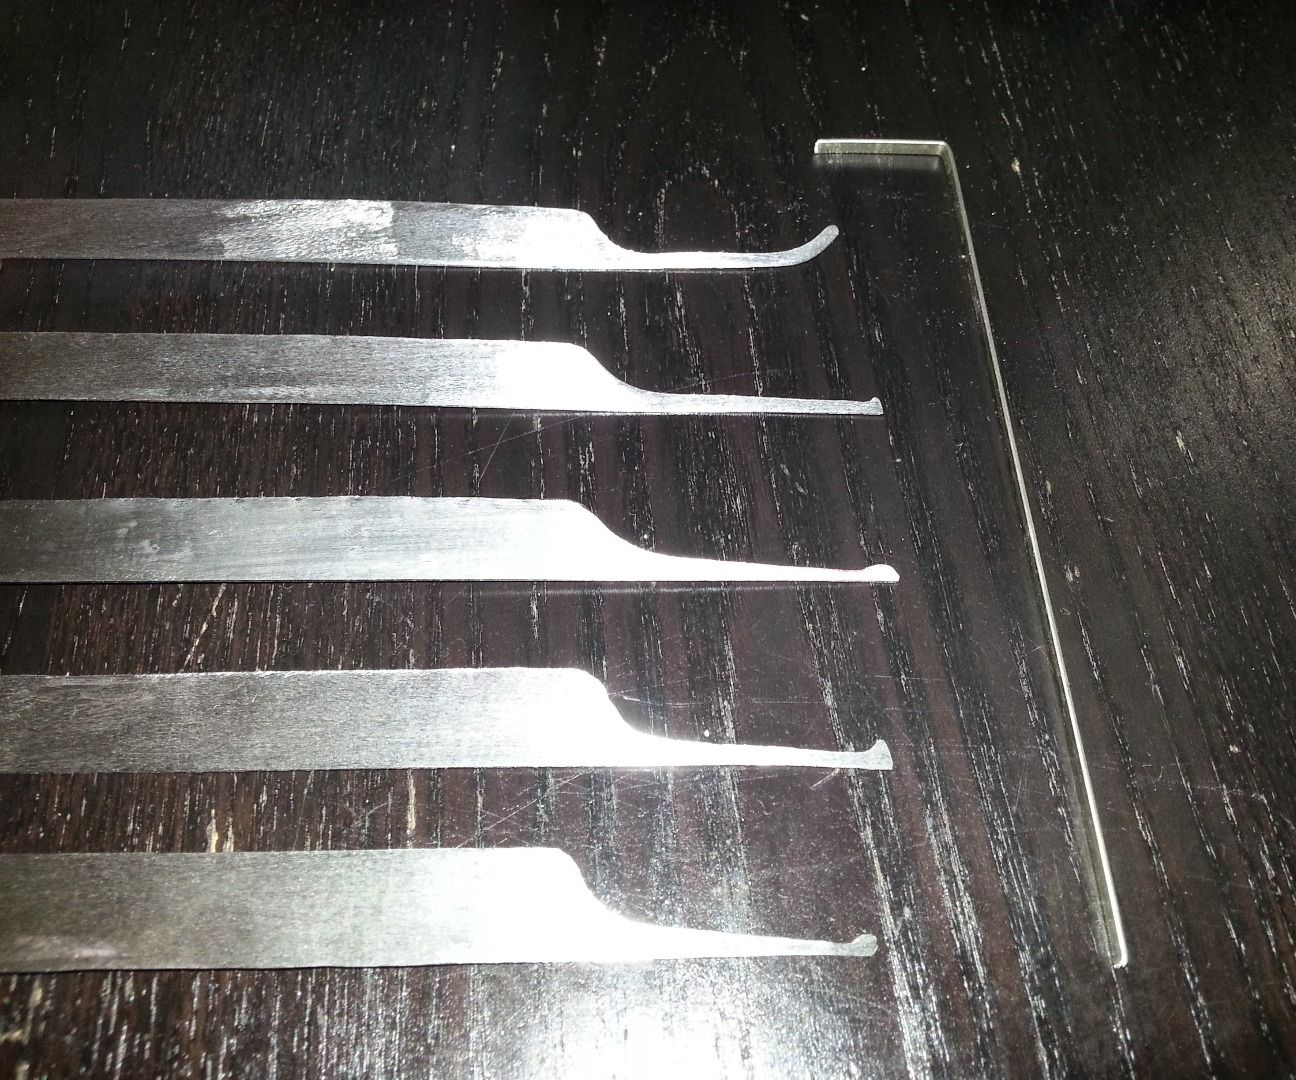 Making Lockpicks From Hacksaw Blades